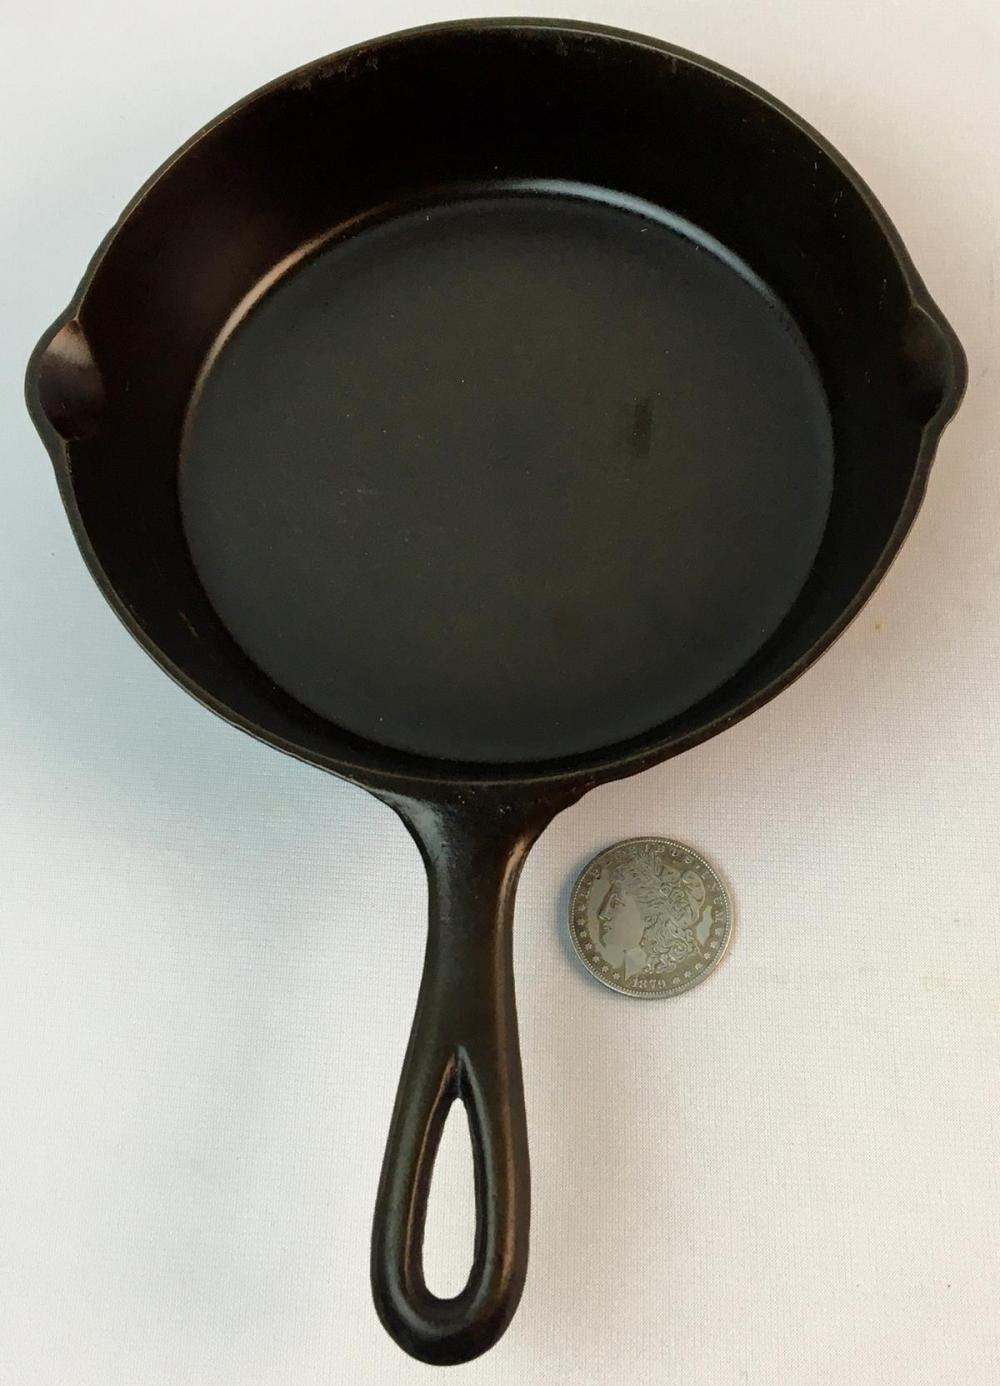 Vintage 1935 Lodge No. 5 C Cast Iron Skillet w/ 1 Notch Heat Ring